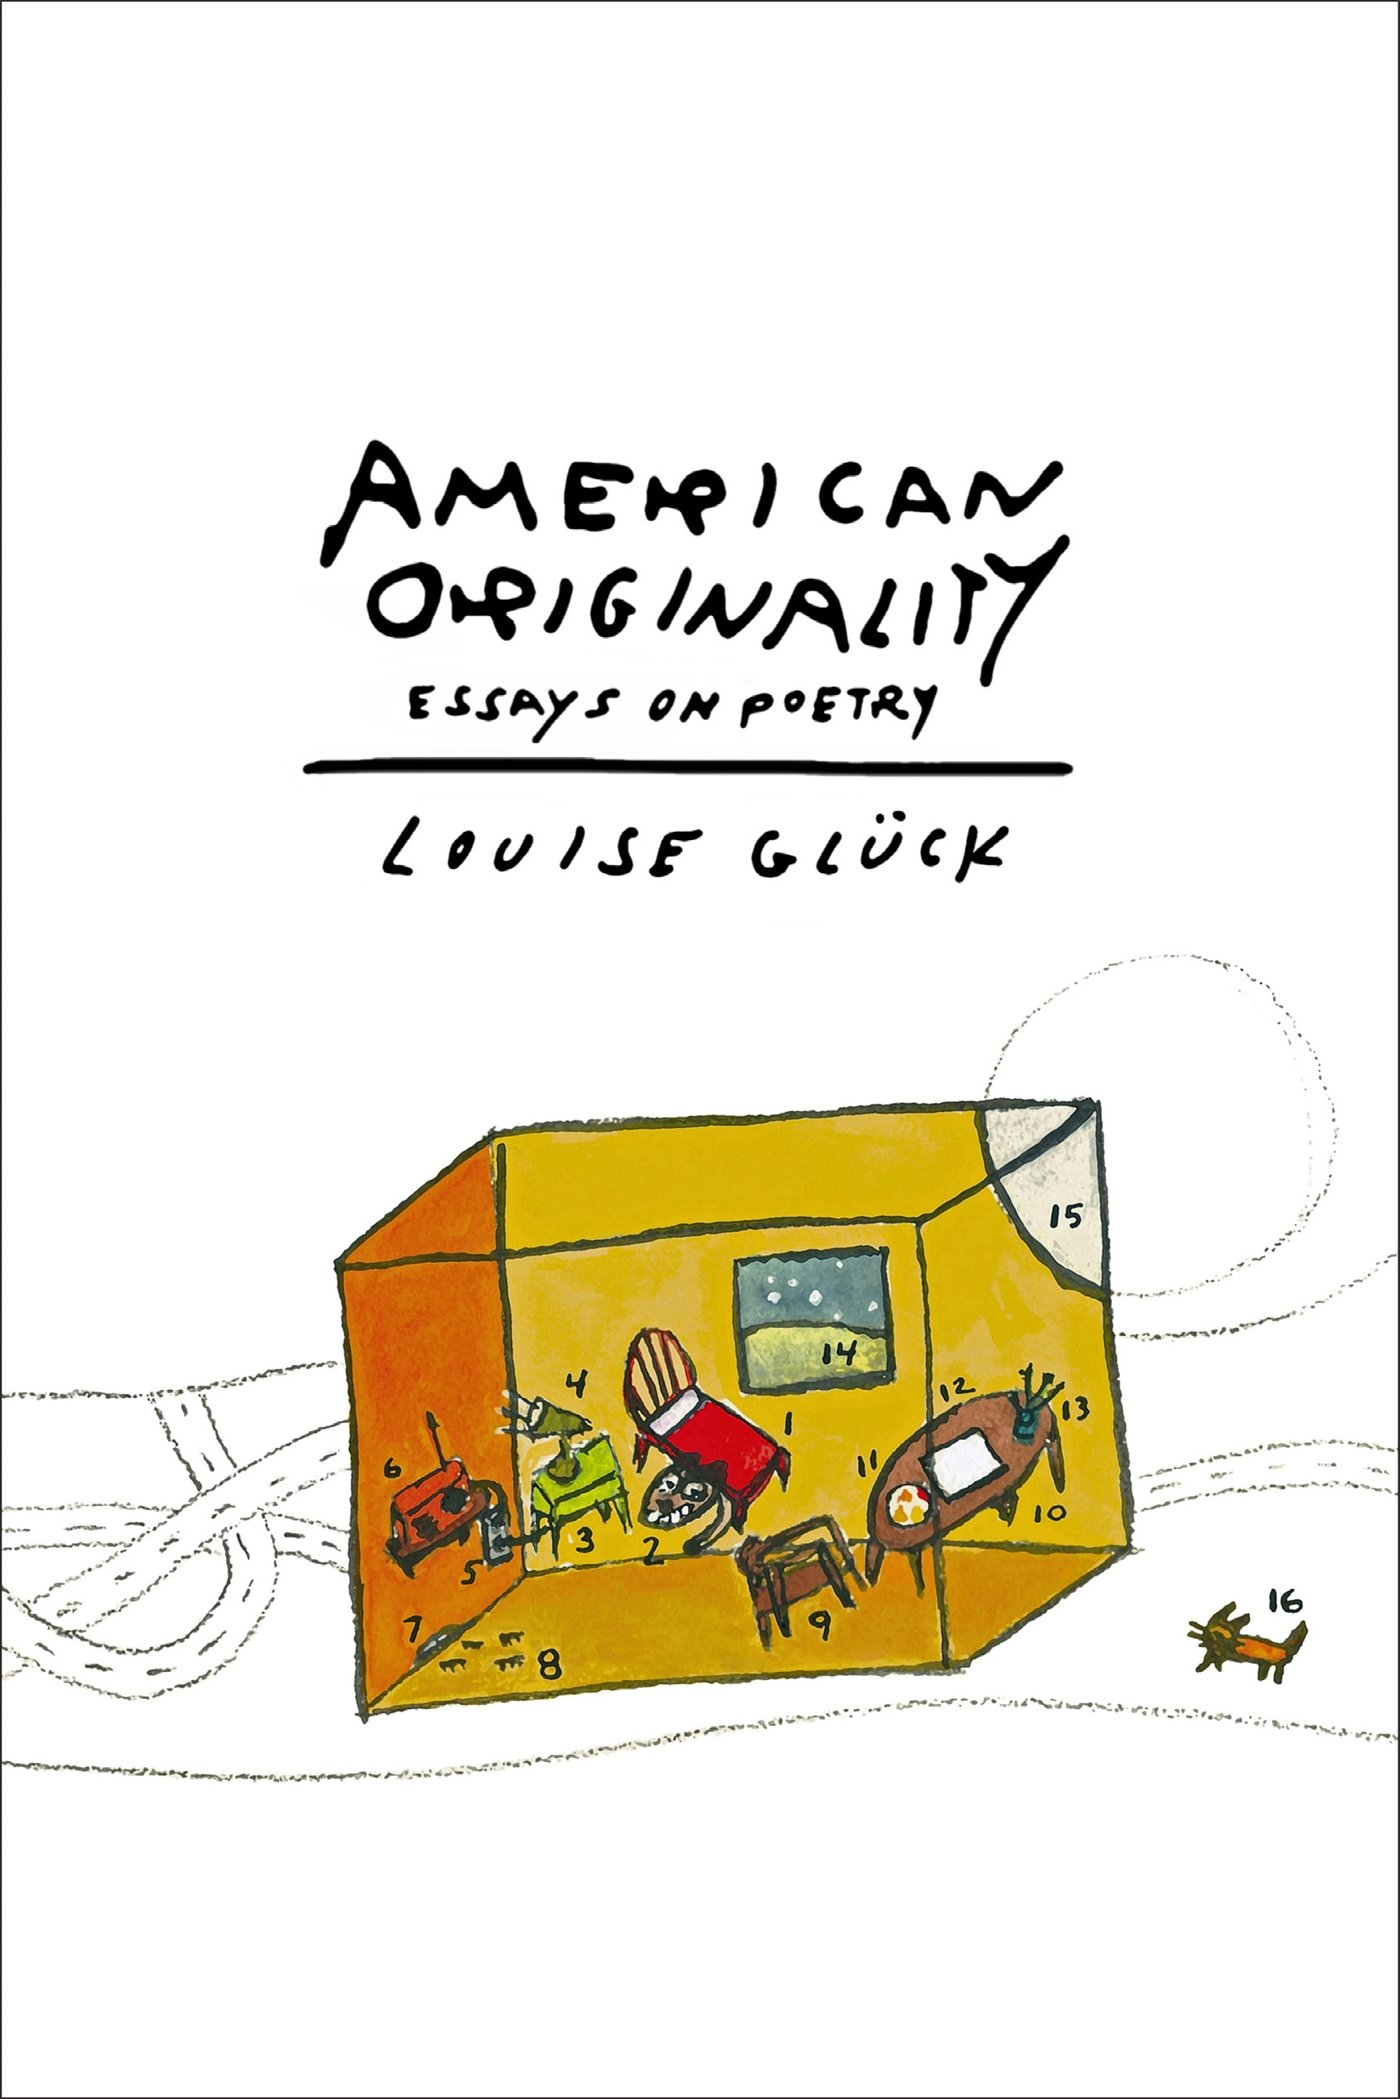 Amazon Com American Originality Essays On Poetry 9780374299552 Gluck Louise Books